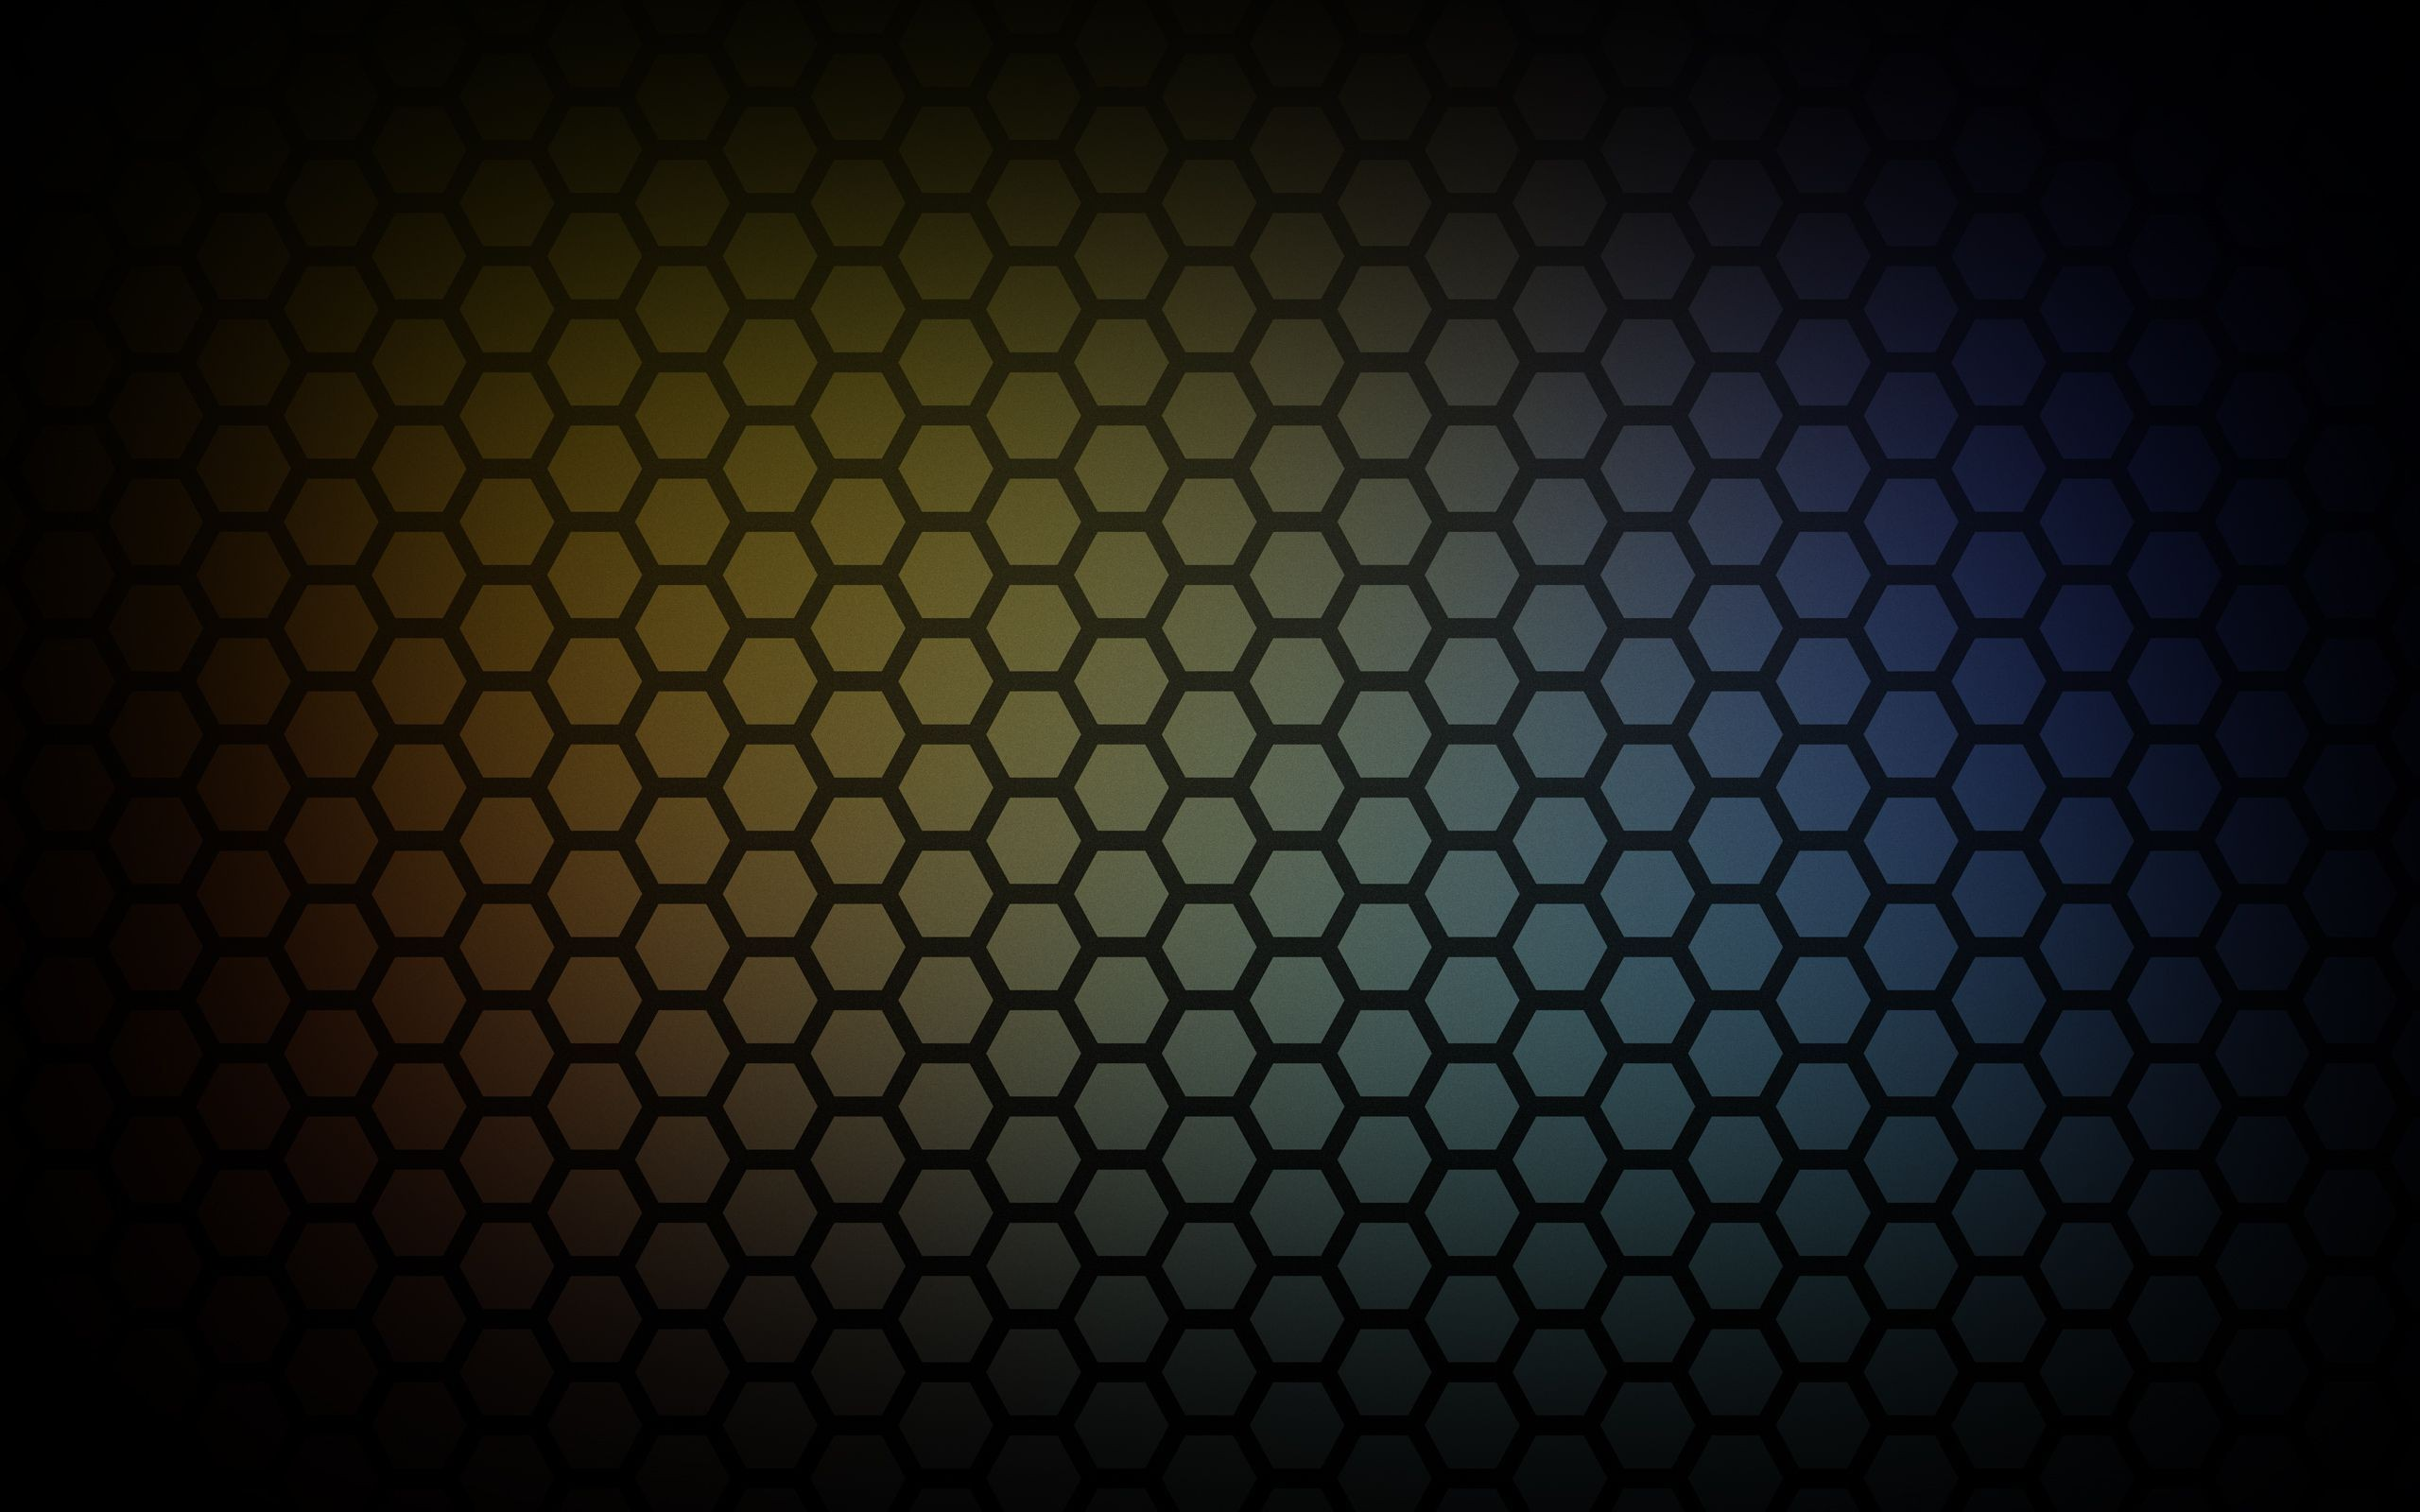 Honeycomb wallpapers background images page 6 - 2560x1600 Honeycomb Background 2560x1600 Image